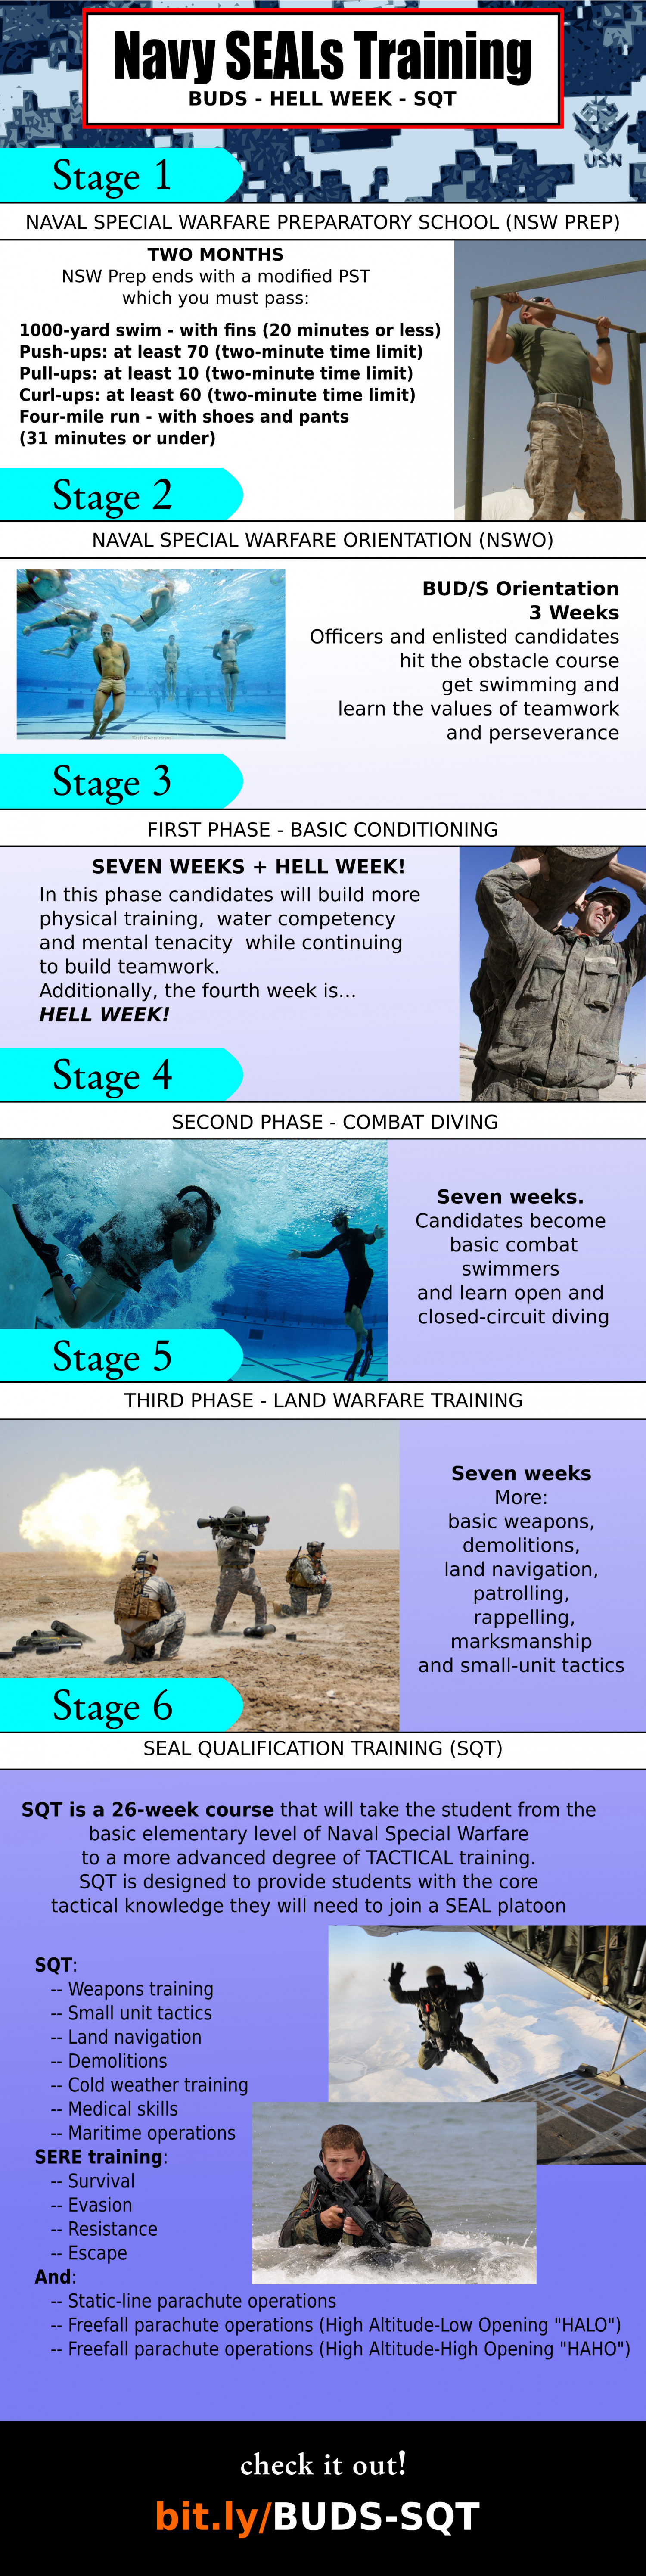 Navy SEALs Training - BUDS - HELL WEEK - SQT Infographic